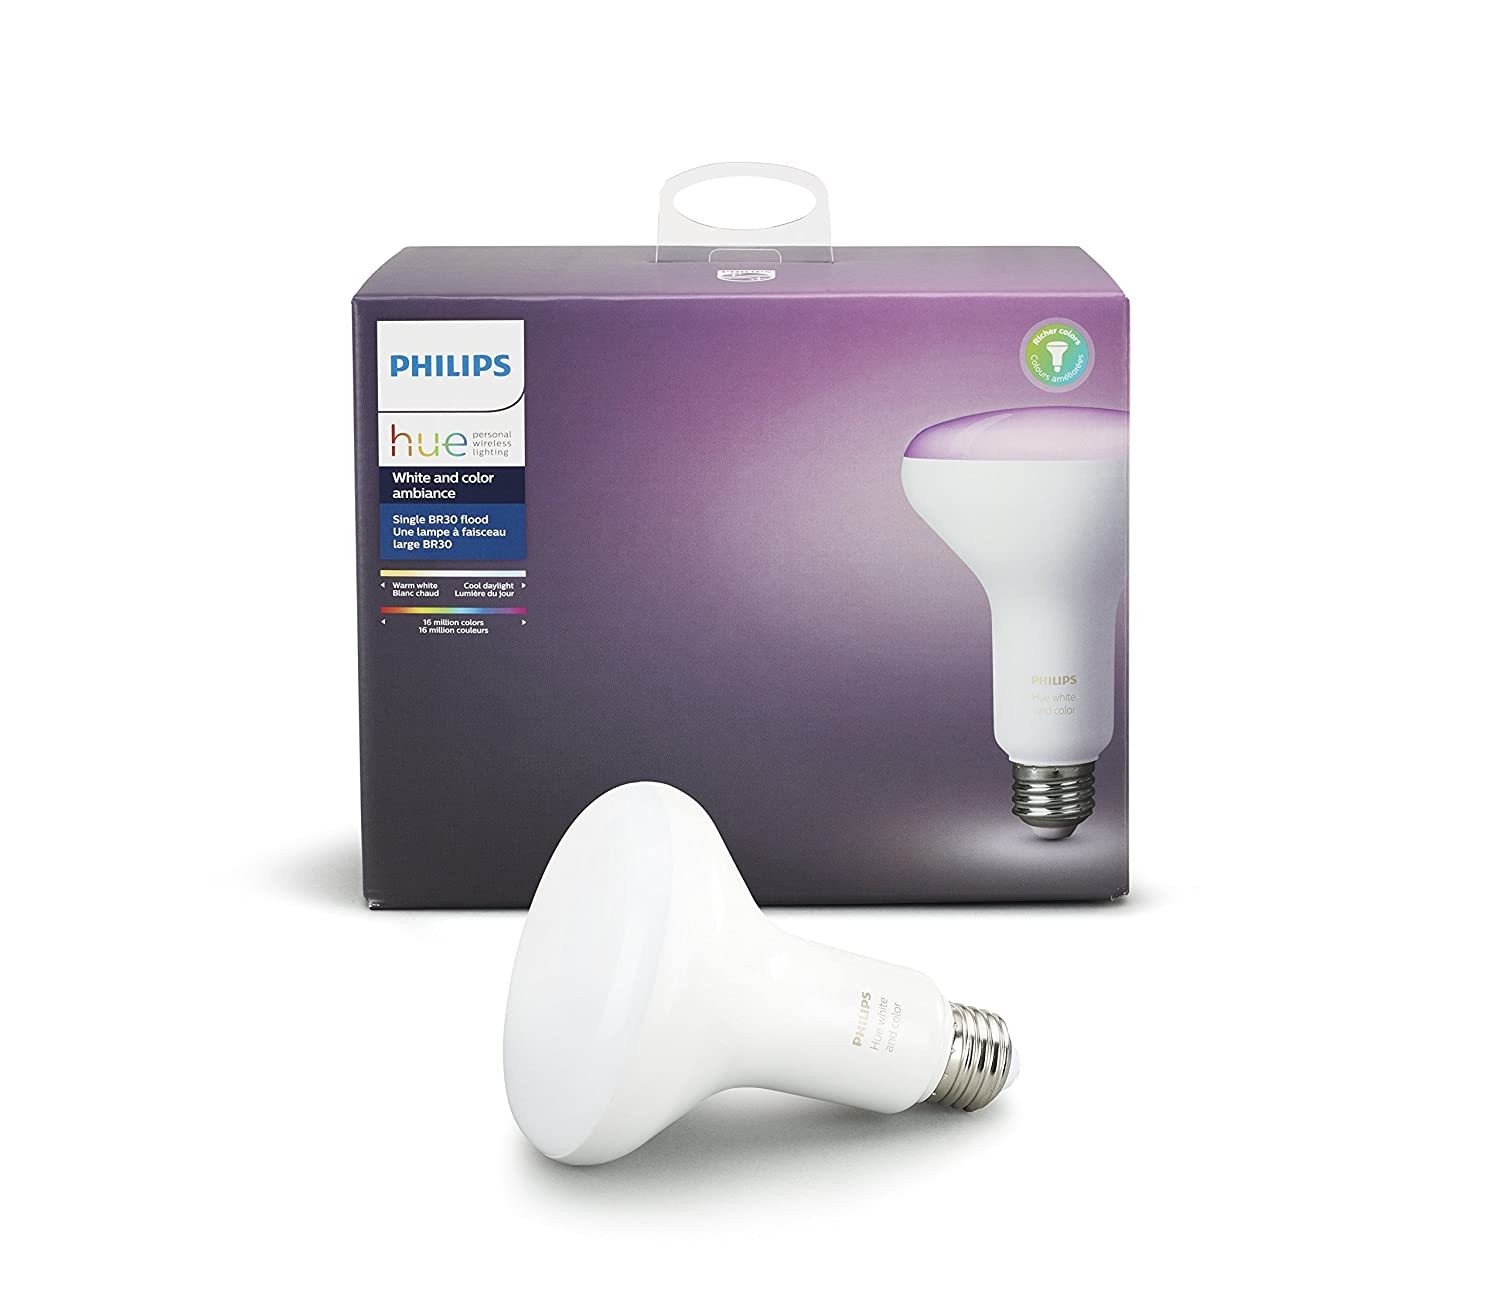 philips hue white and color ambiance br30 60w equivalent dimmable led smart 689853947092 ebay. Black Bedroom Furniture Sets. Home Design Ideas